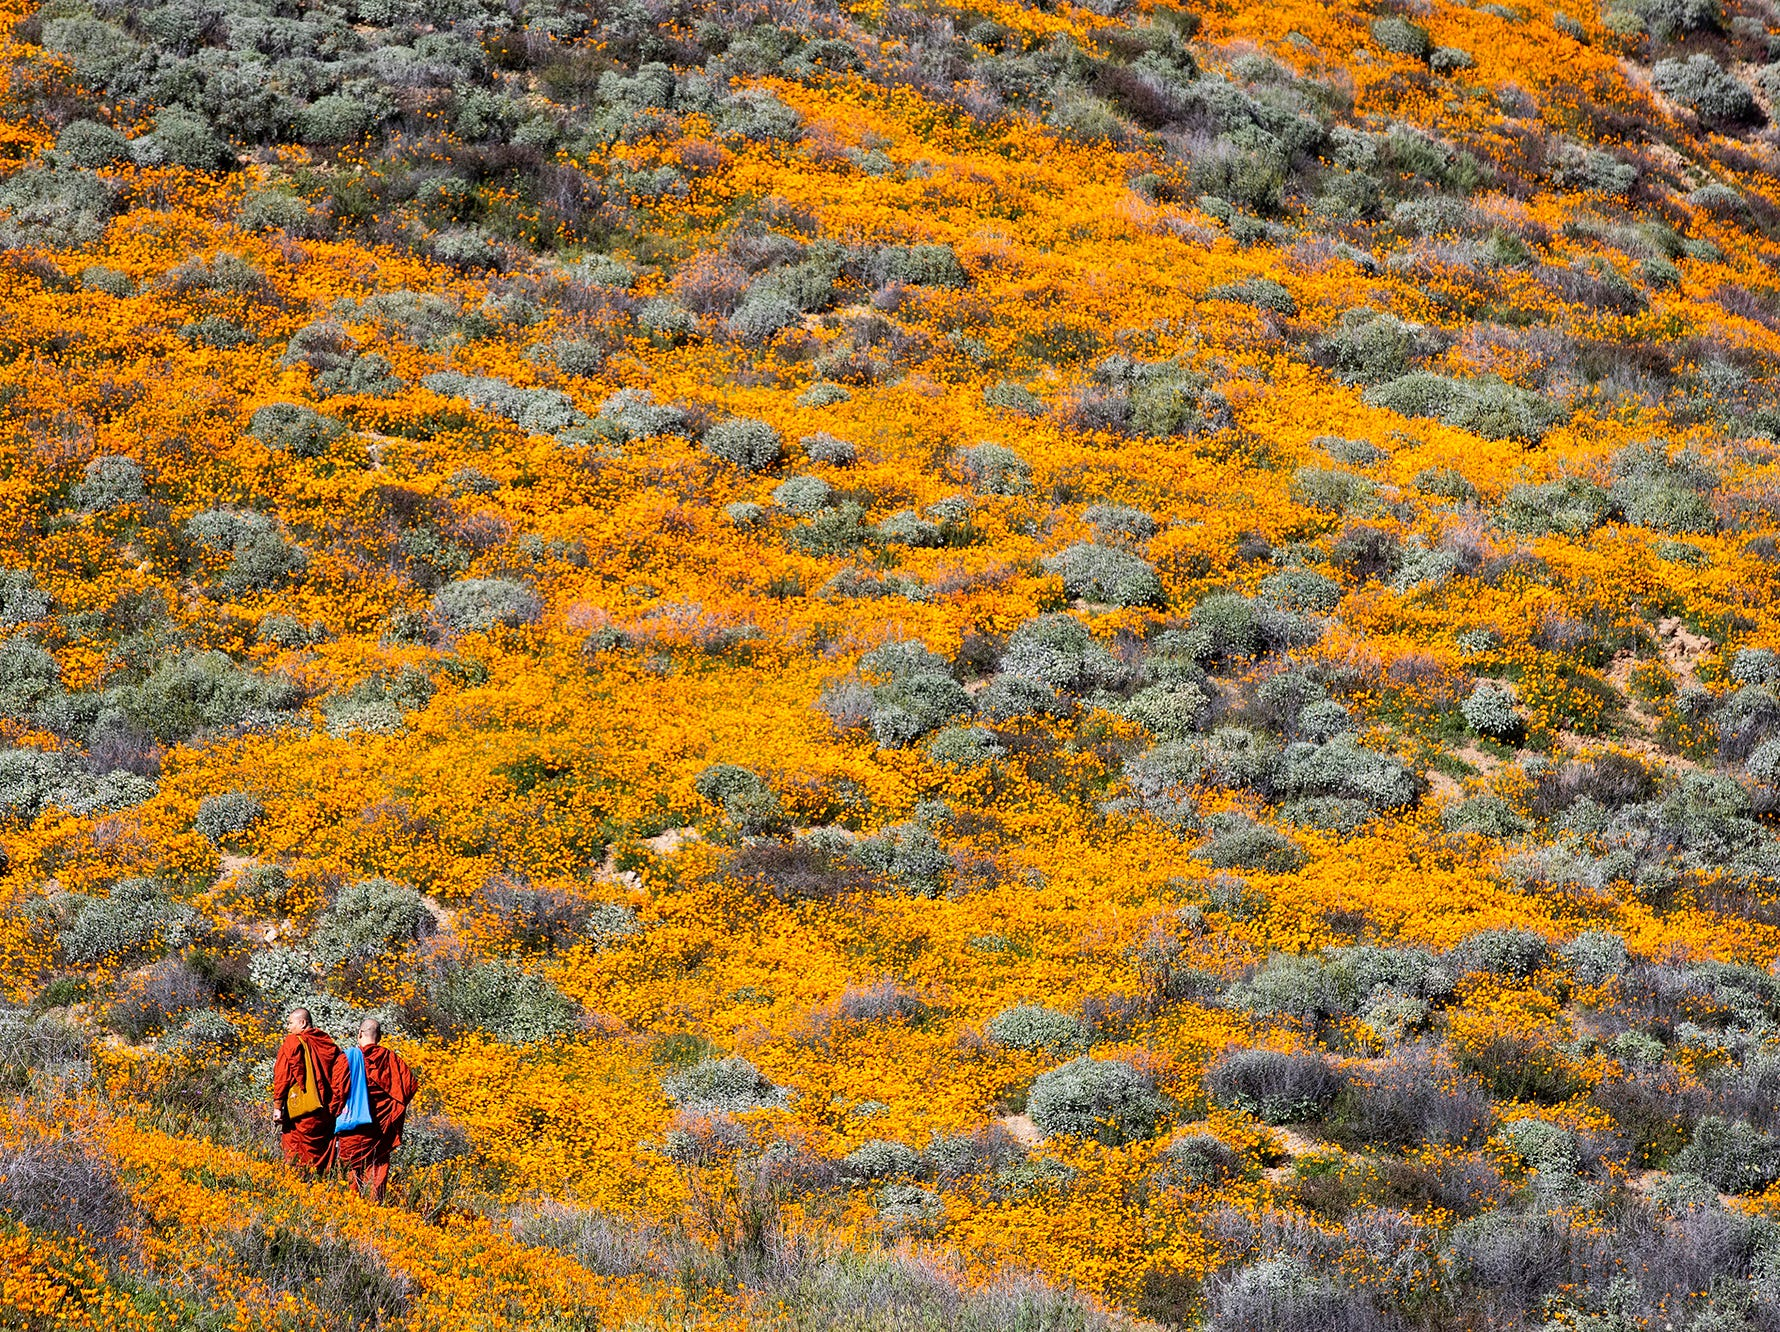 Two buddhist monks walk among the poppy fields as they are blooming on the slops of Walker Canyon near Lake Elsinore, Calif. March 8, 2019.